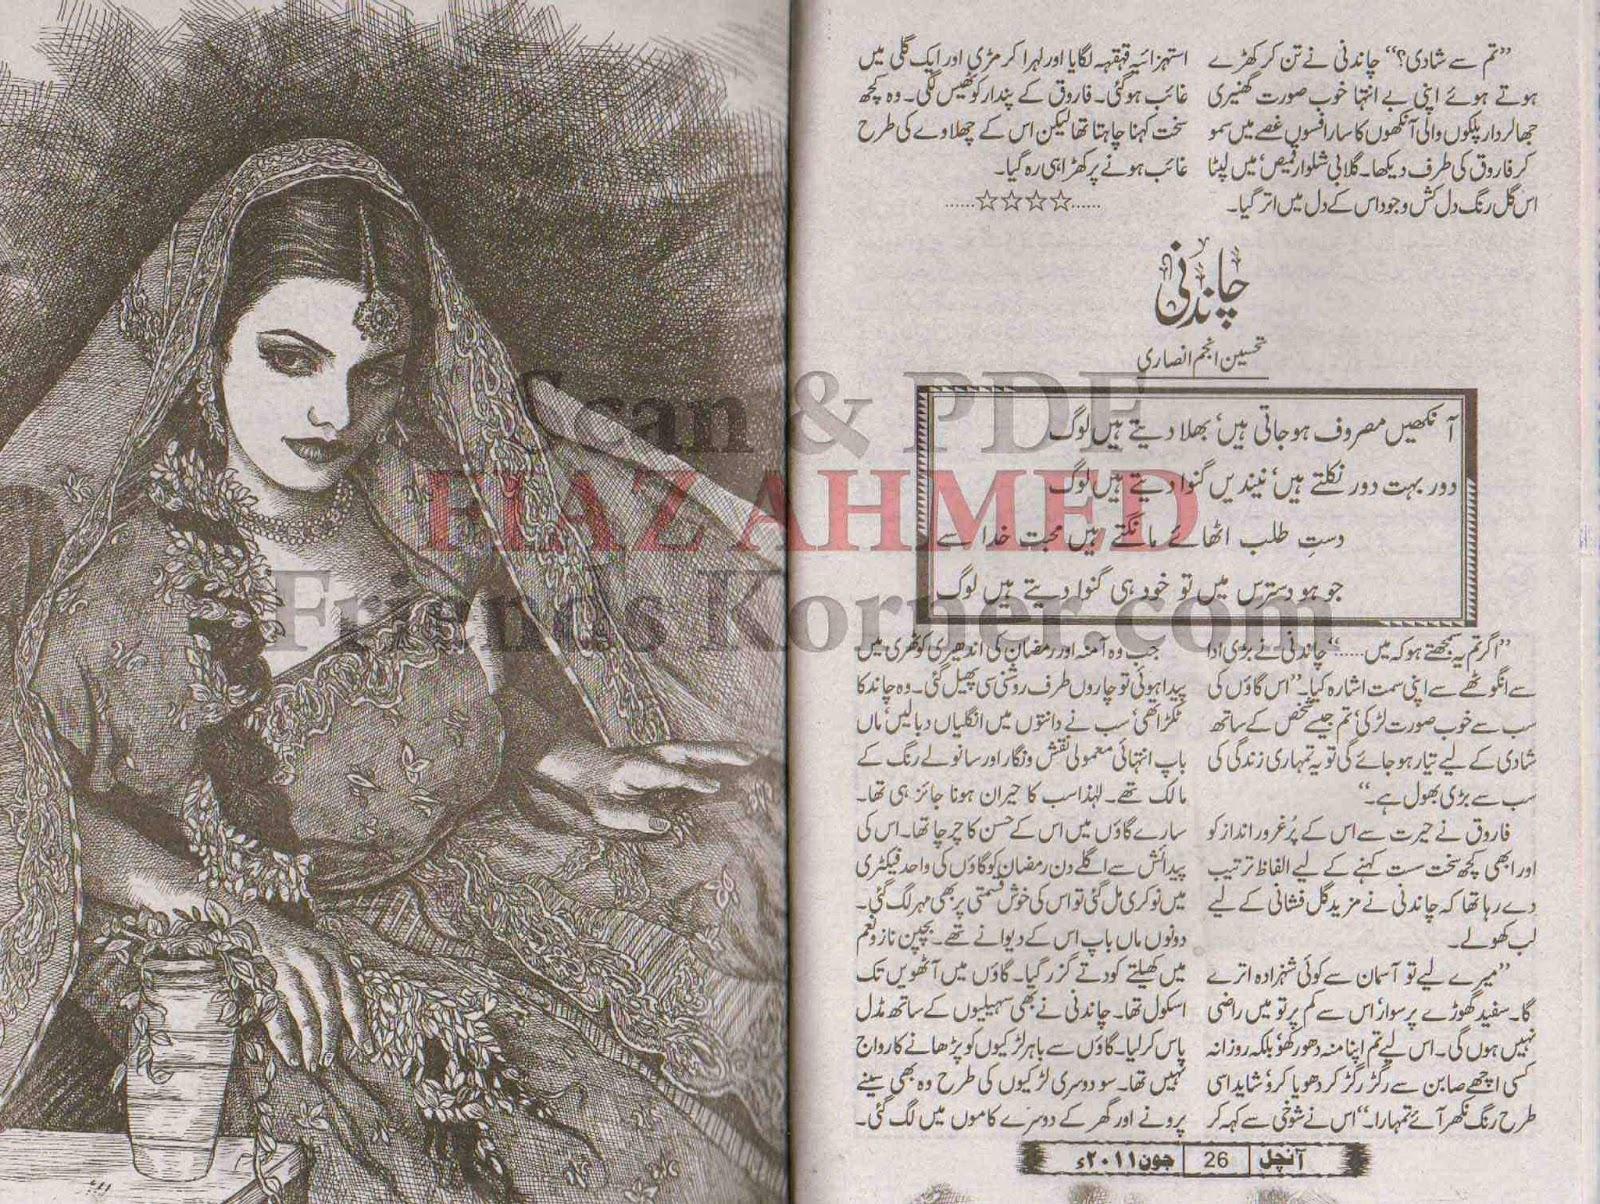 kitab dost chandani by tehseen anjum ansari online reading click on the more button to continue reading